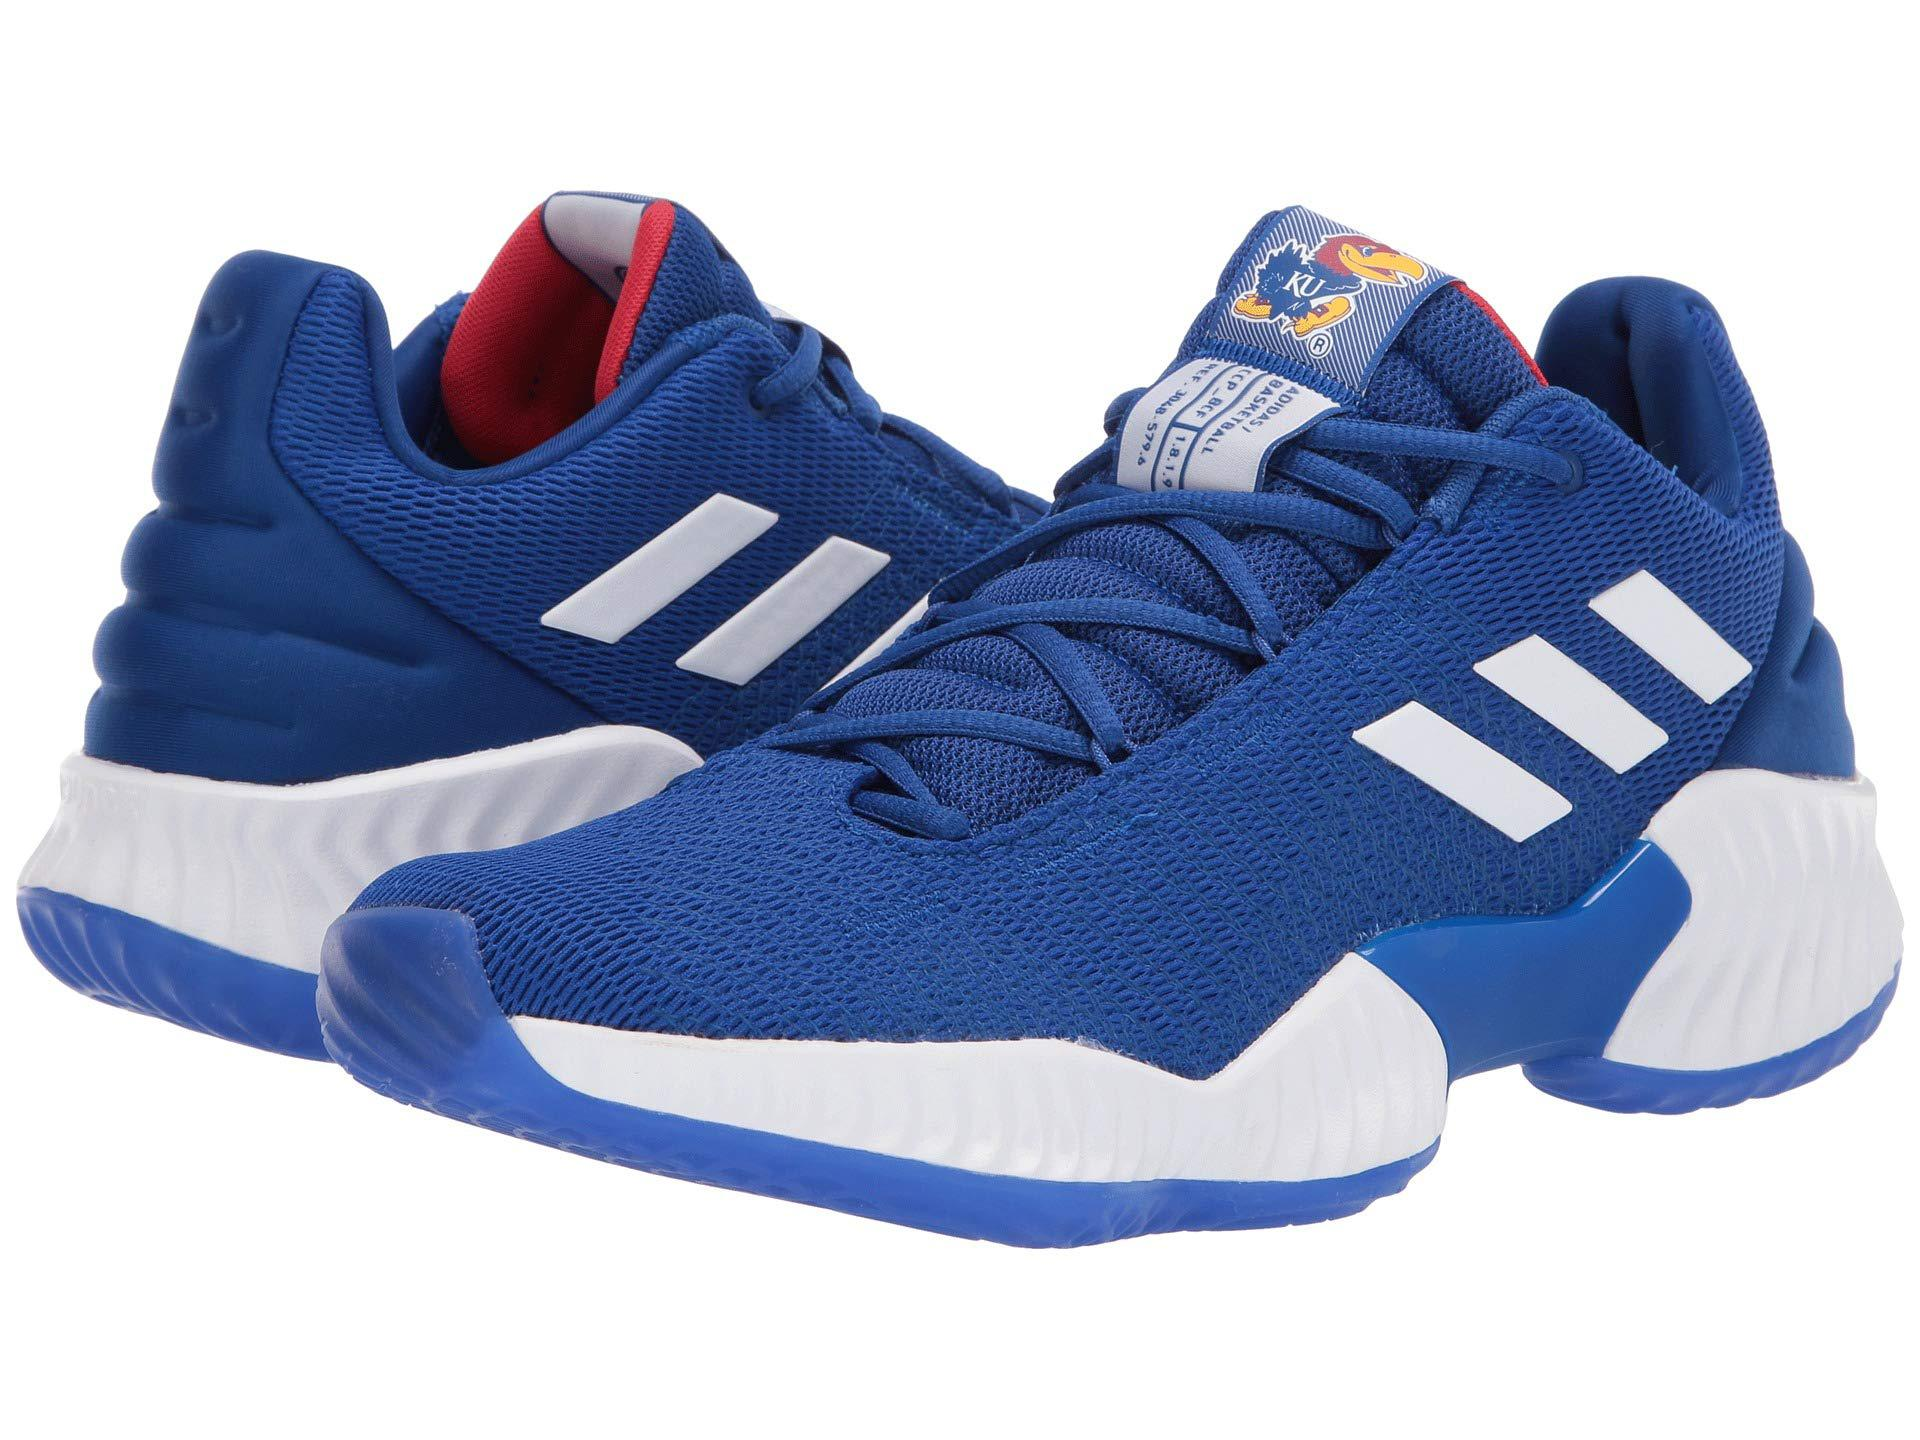 e79d6ff749ad5 Adidas - Blue Pro Bounce Low for Men - Lyst. View fullscreen